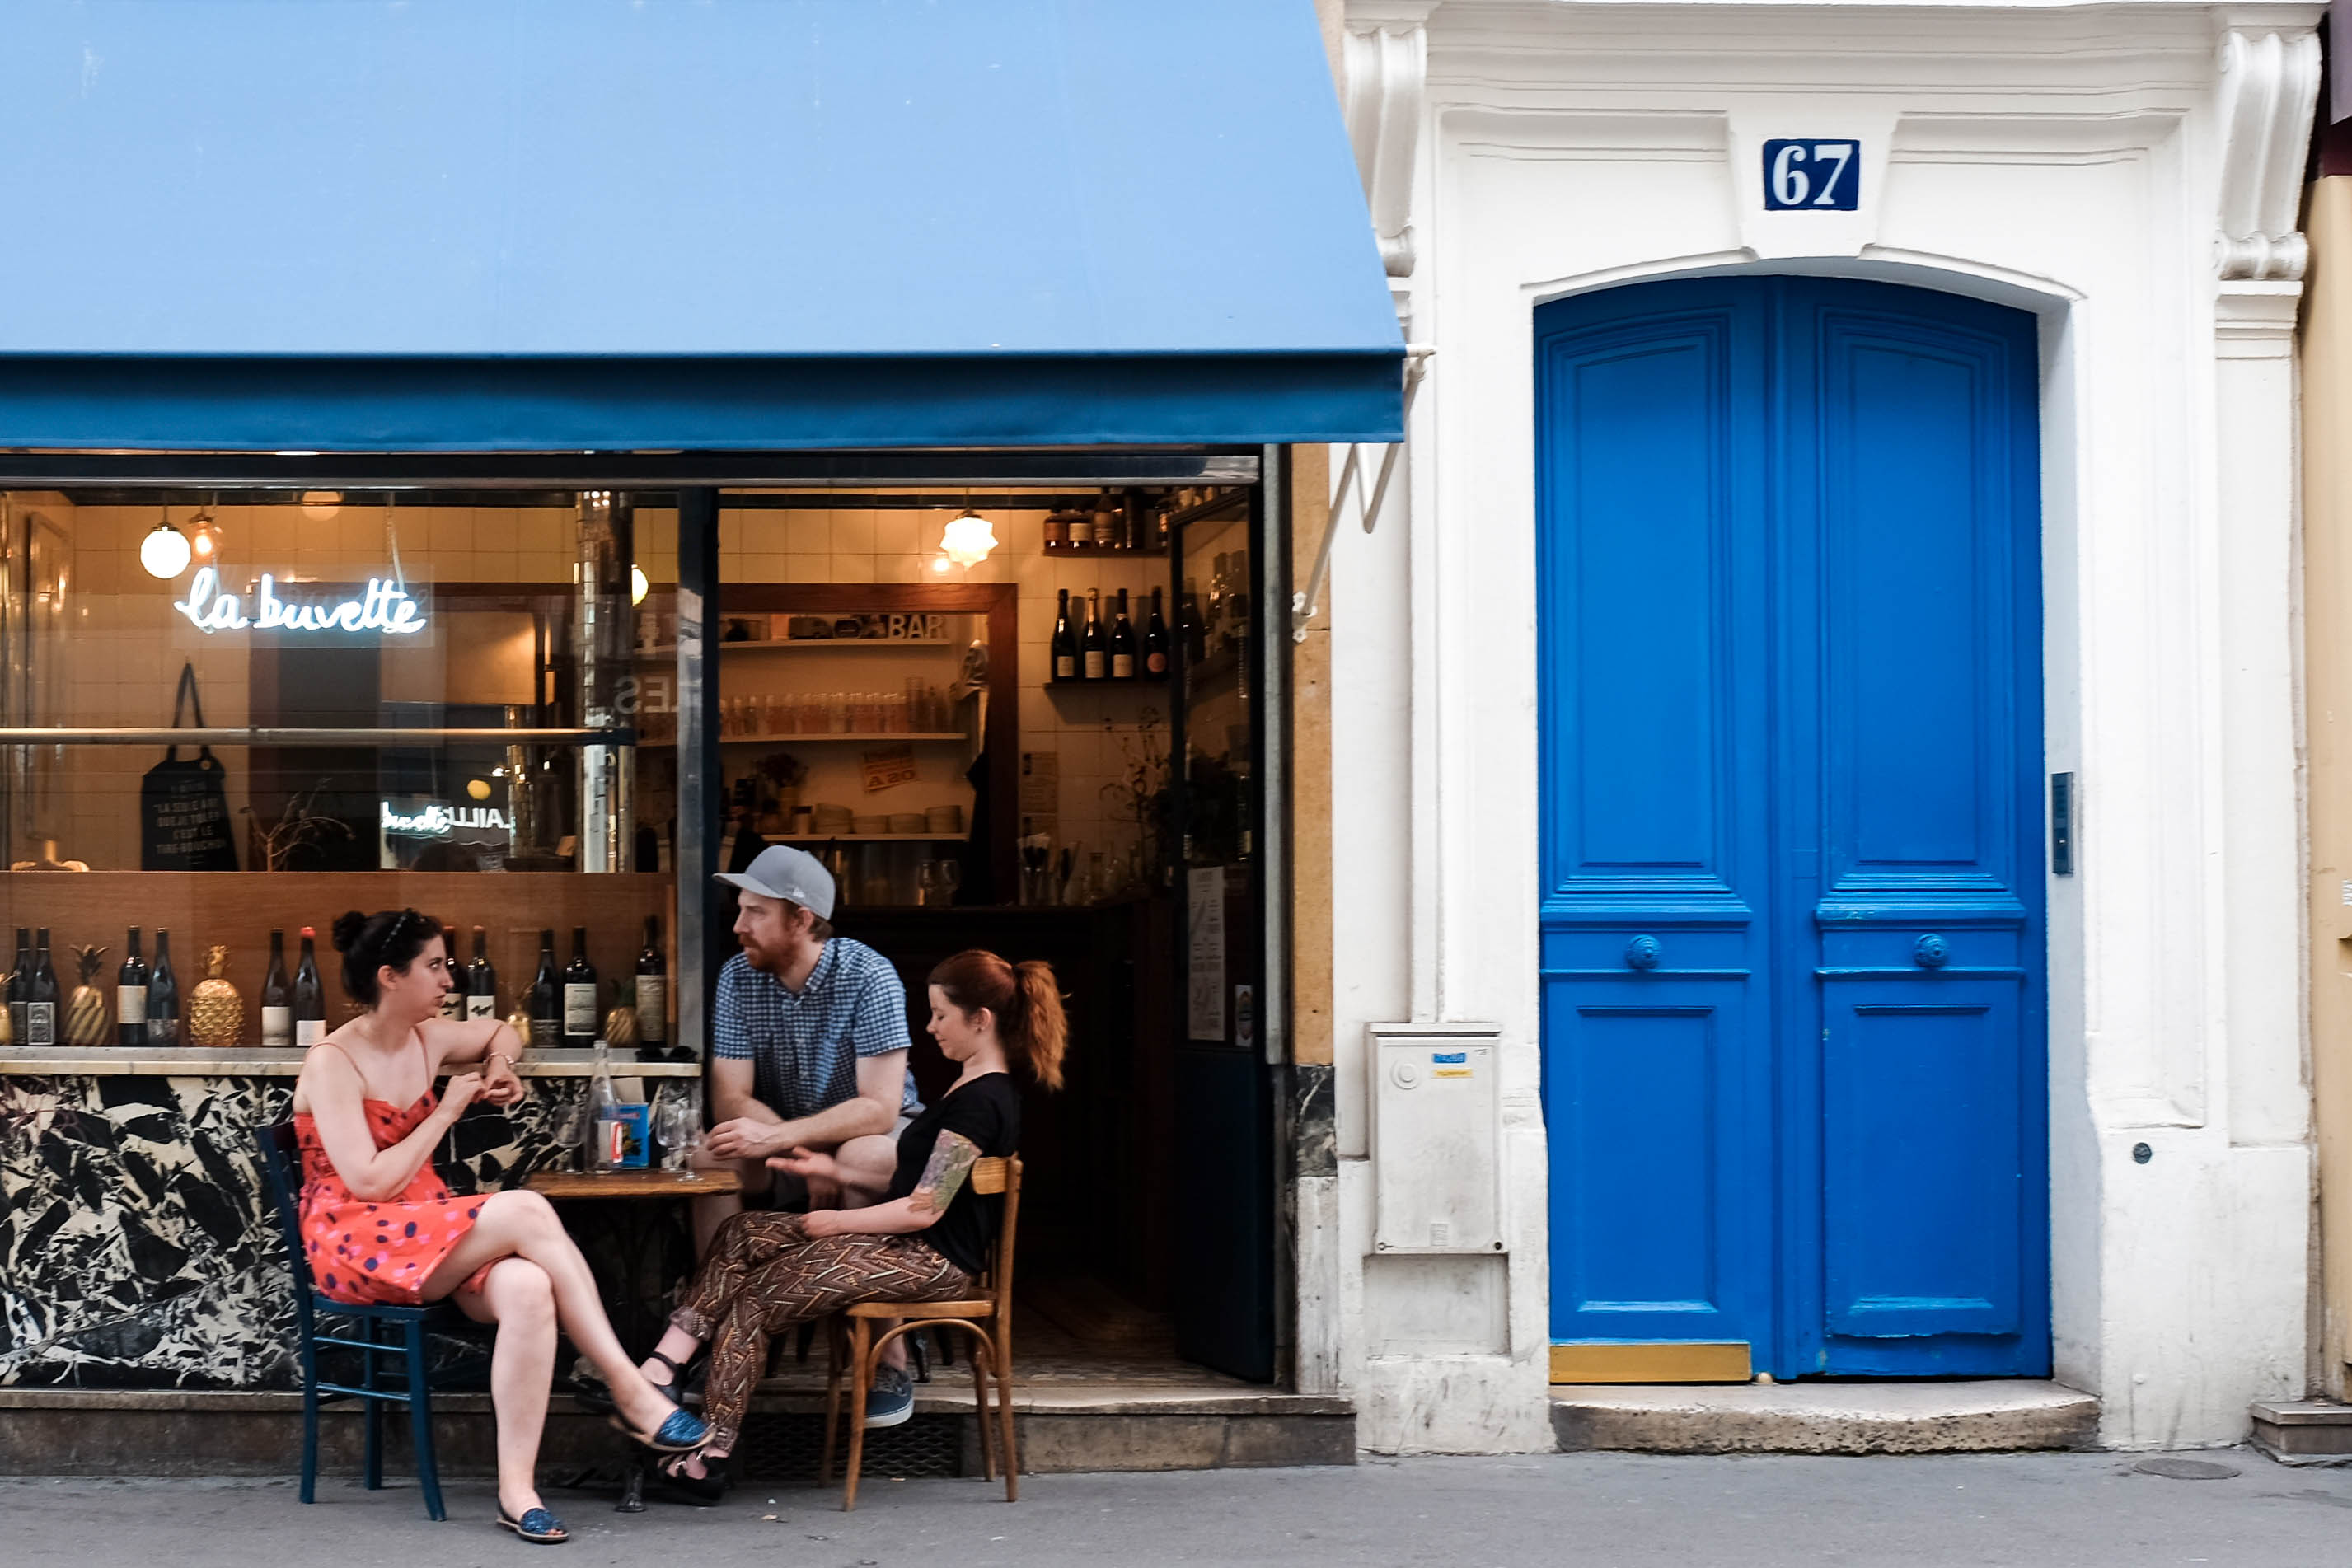 Three people sit at a sidewalk table outside La Buvette wine bar in Paris.